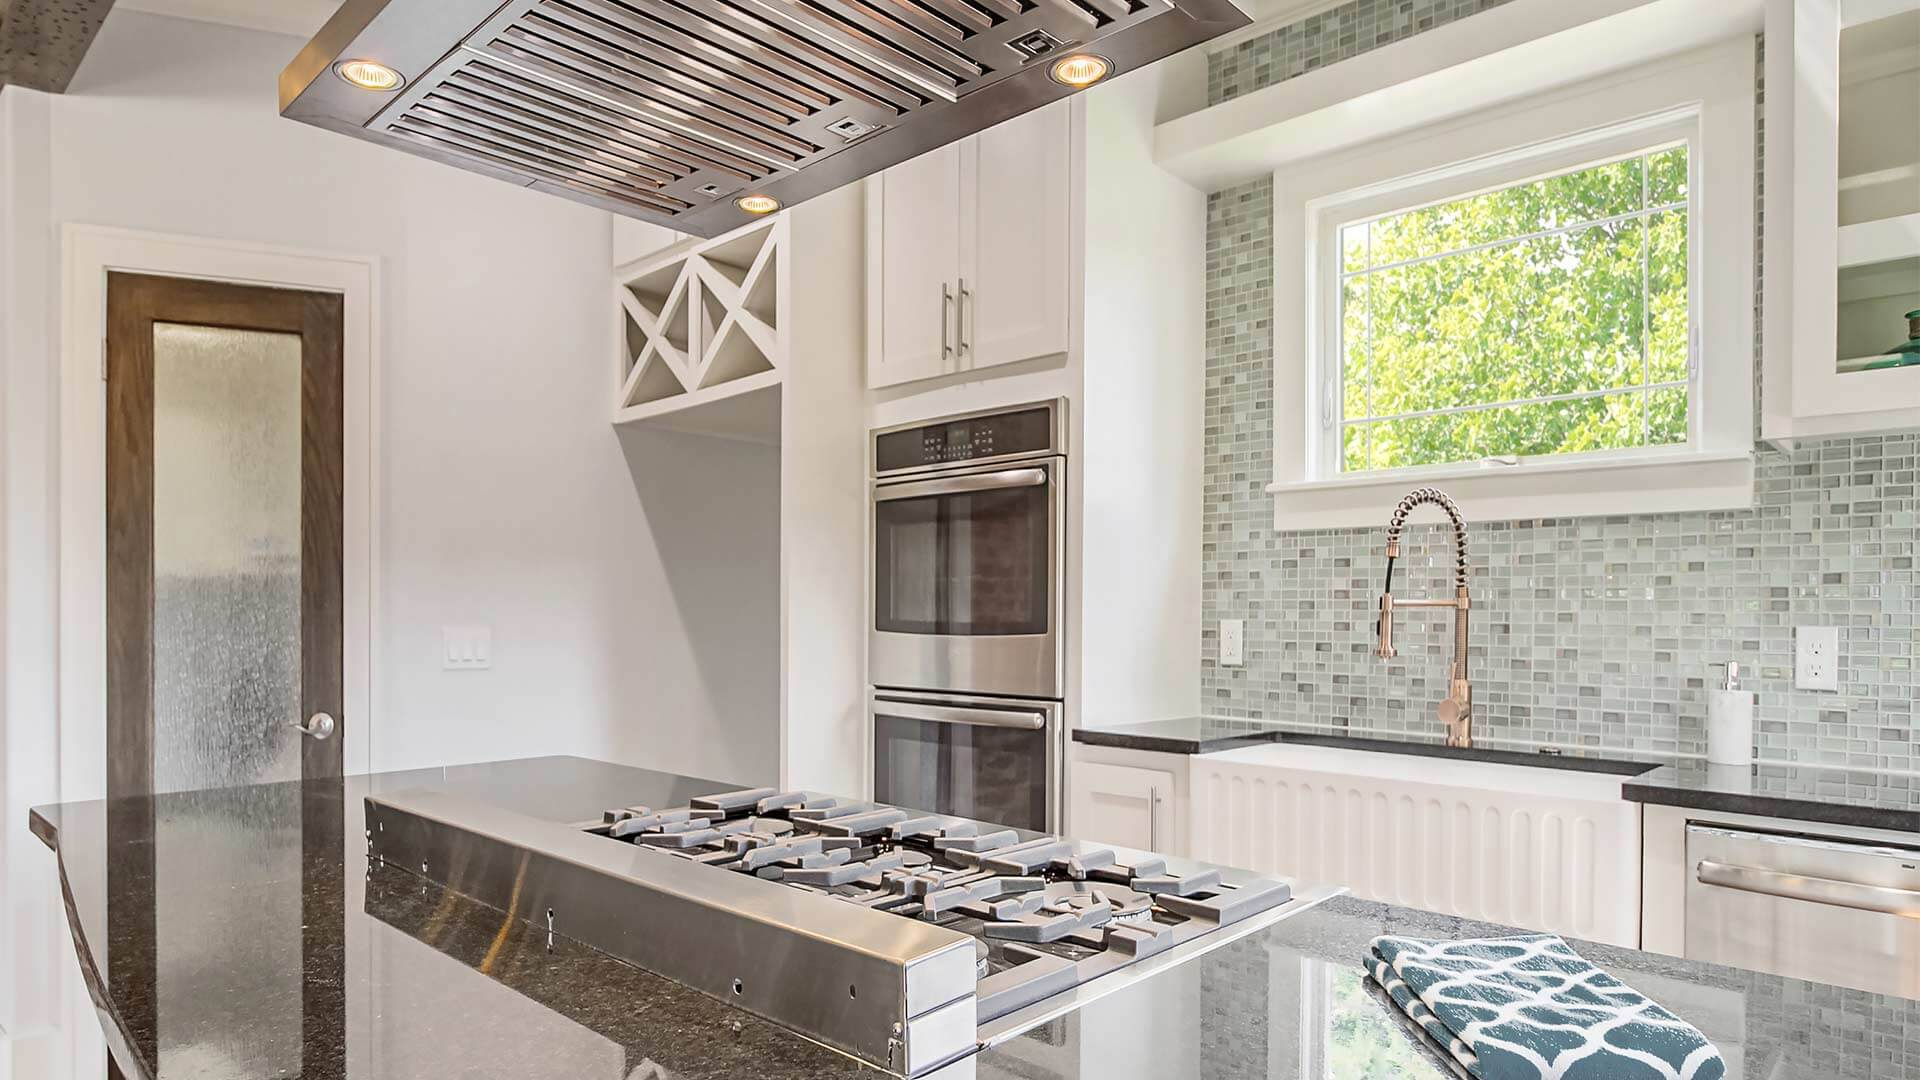 Modern renovated kitchen with a Classic Series Awning Window.